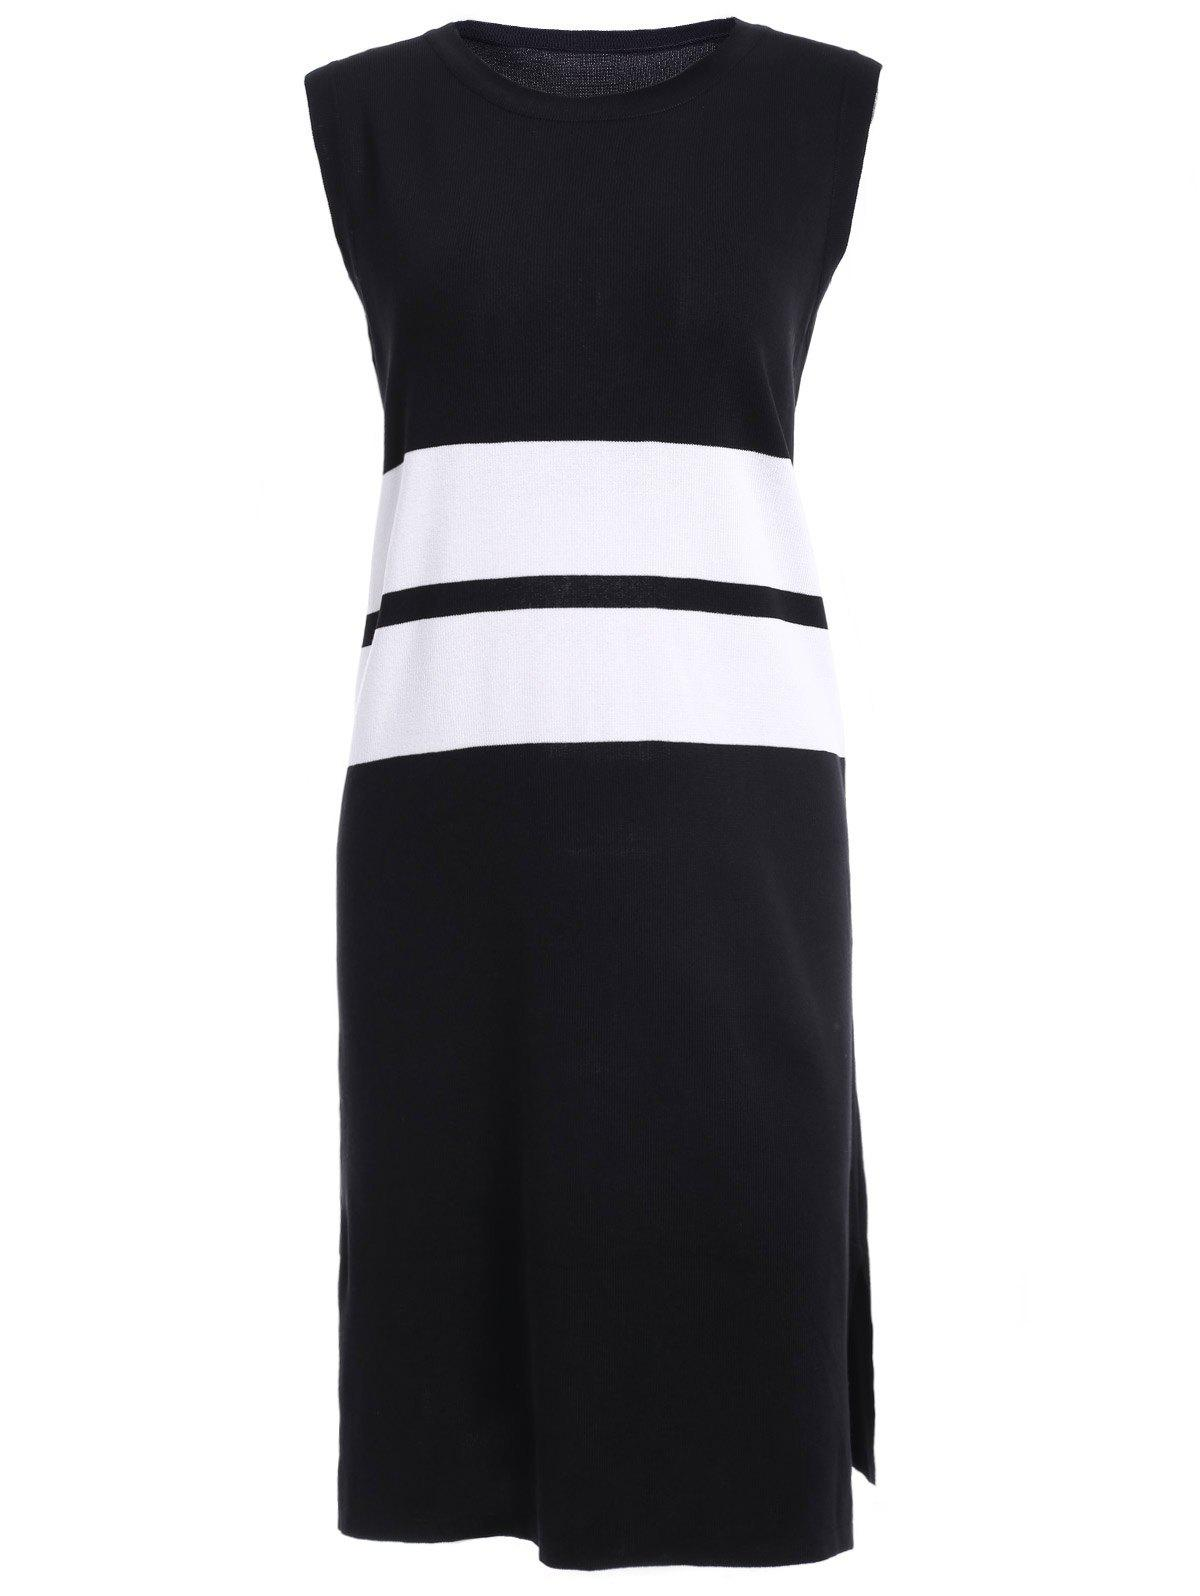 Casual Women's Scoop Neck Colorful Hoodie Slit Sleeveless Mid-Calf Dress - WHITE/BLACK ONE SIZE(FIT SIZE XS TO M)